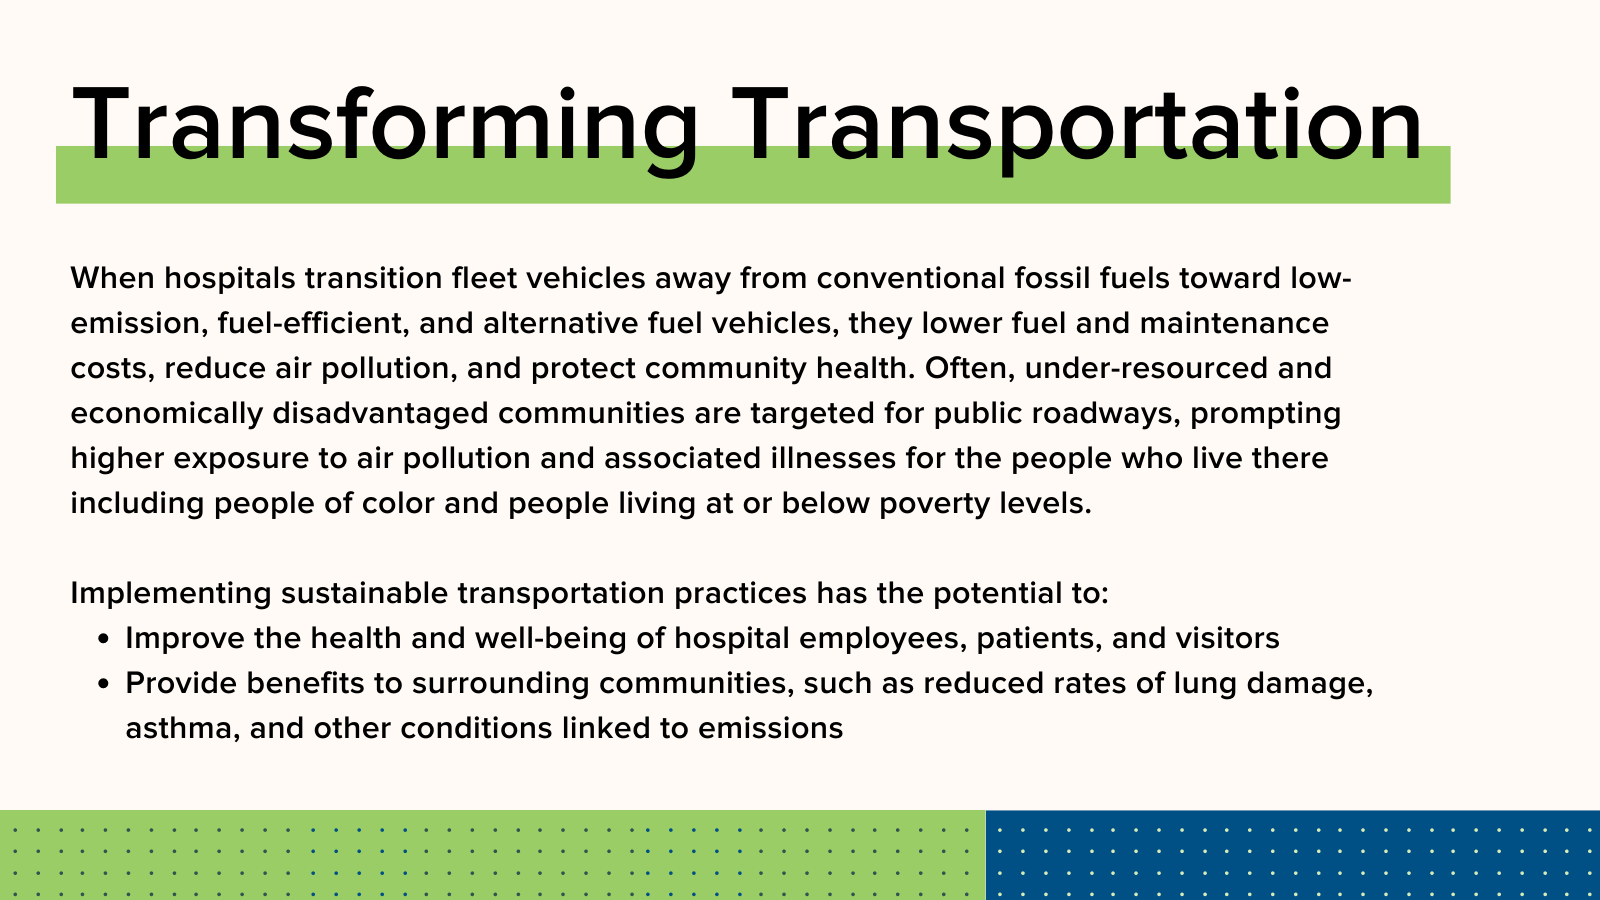 How transforming transportation can build resilience.